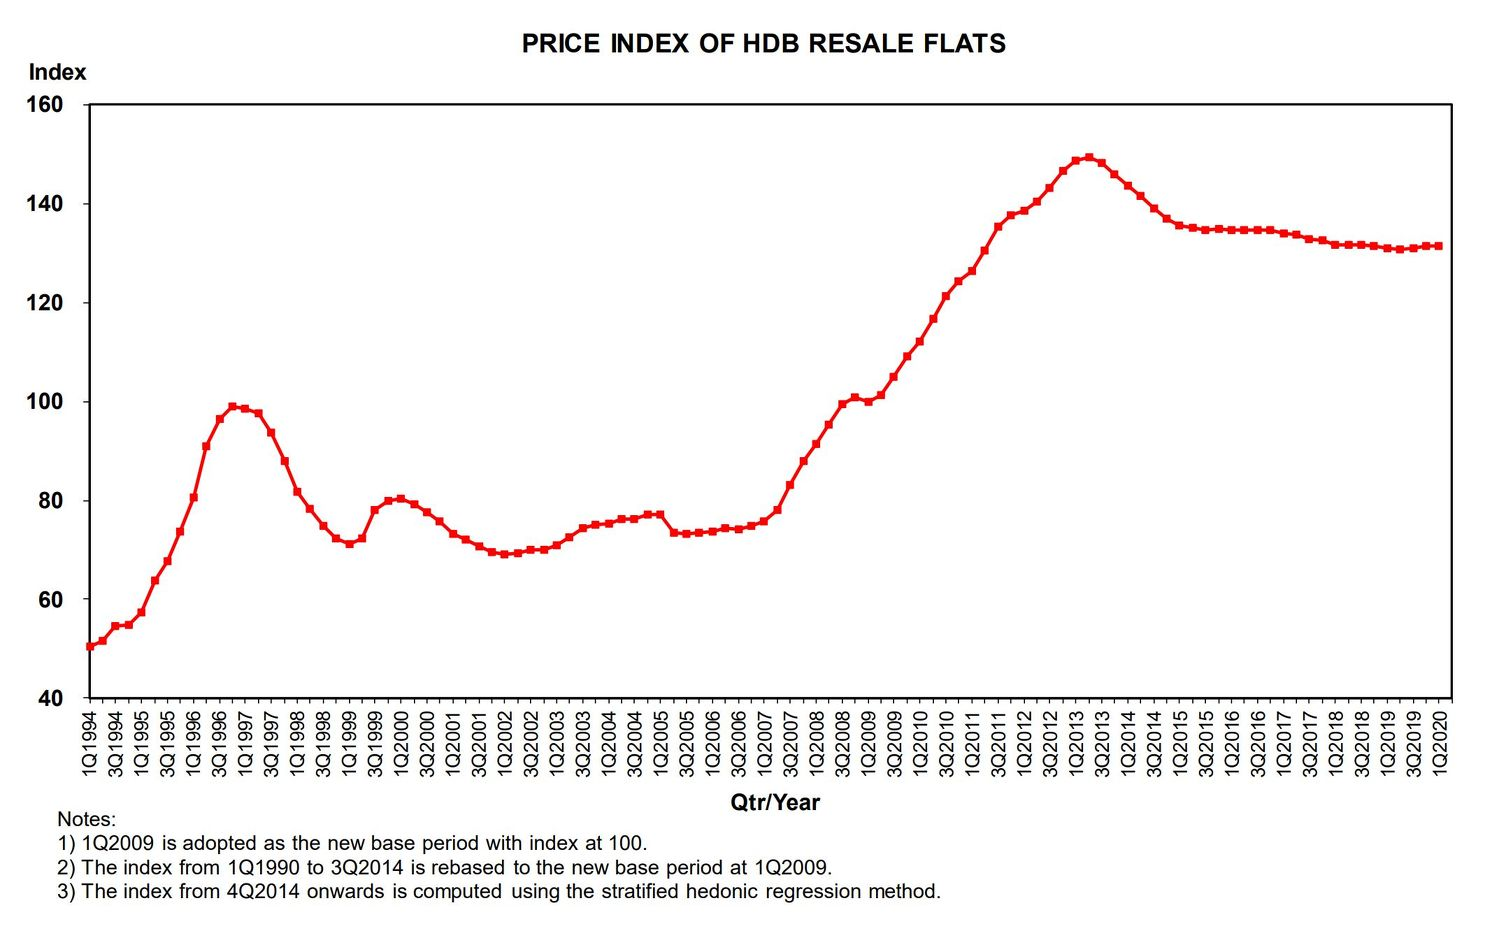 EDGEPROP - PRICE INDEX HDB RESALE FLATS